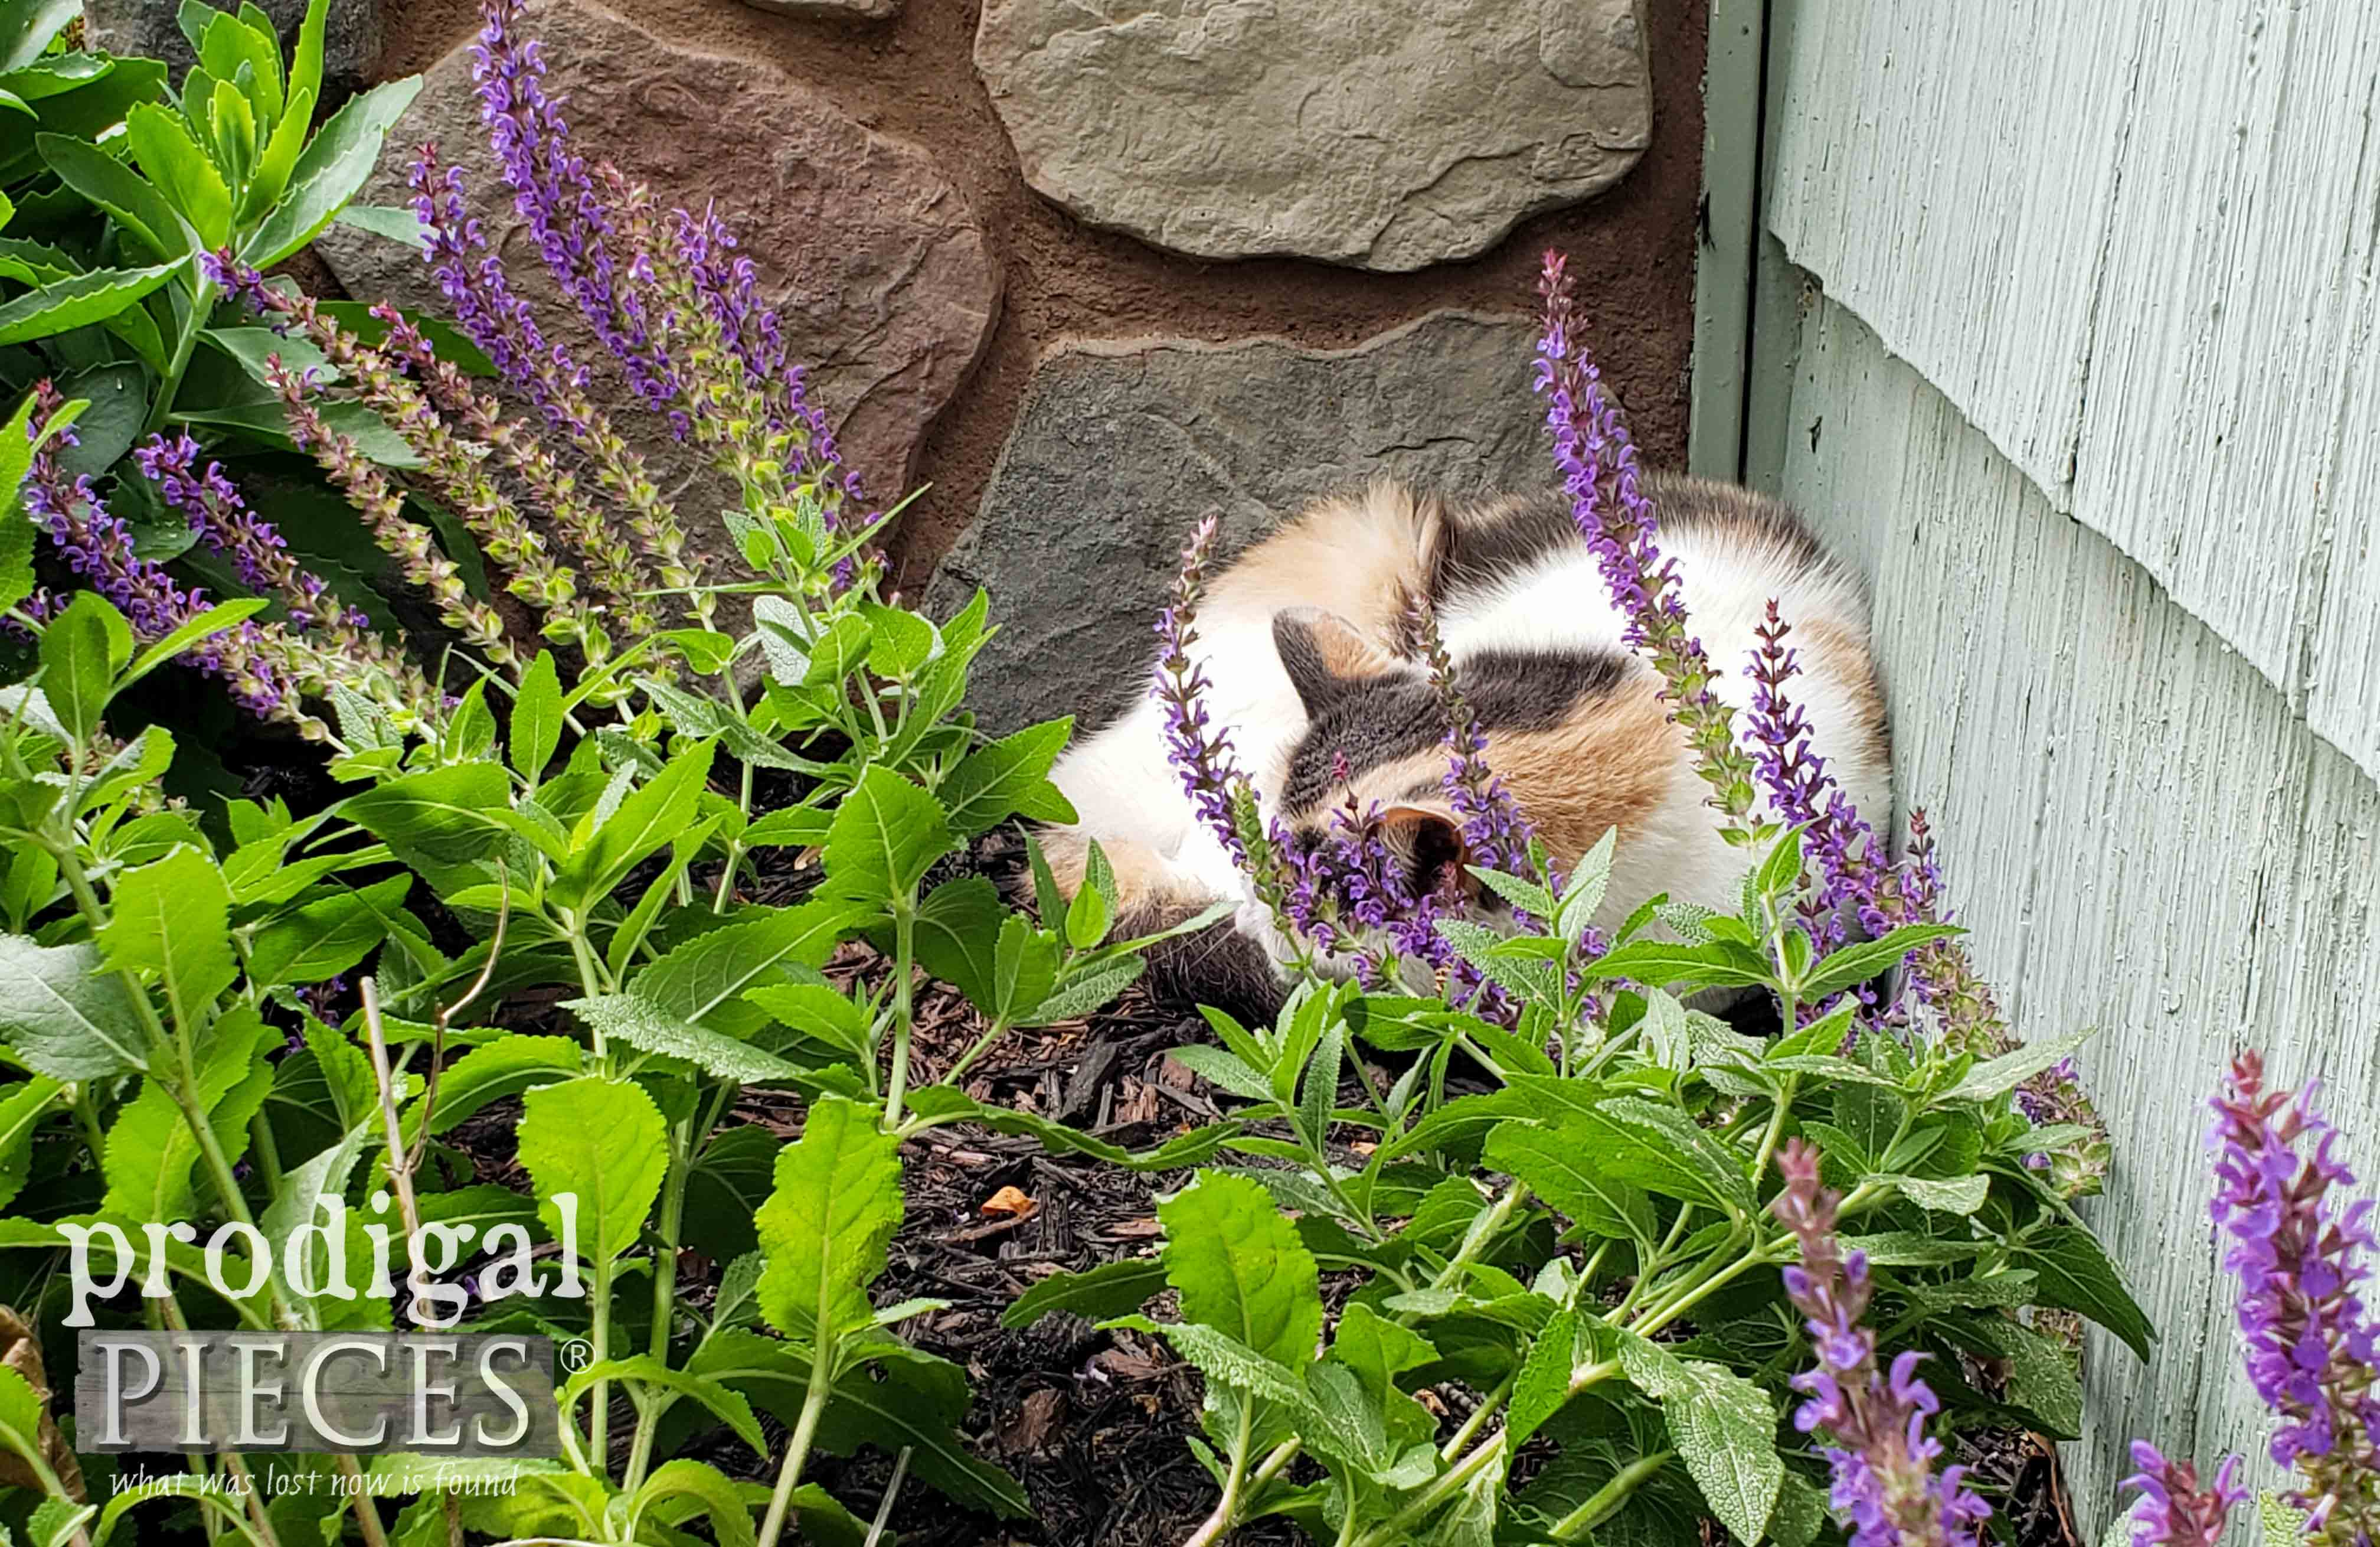 Calico Cat Napping in Garden | prodigalpieces.com #prodigalpieces #cats